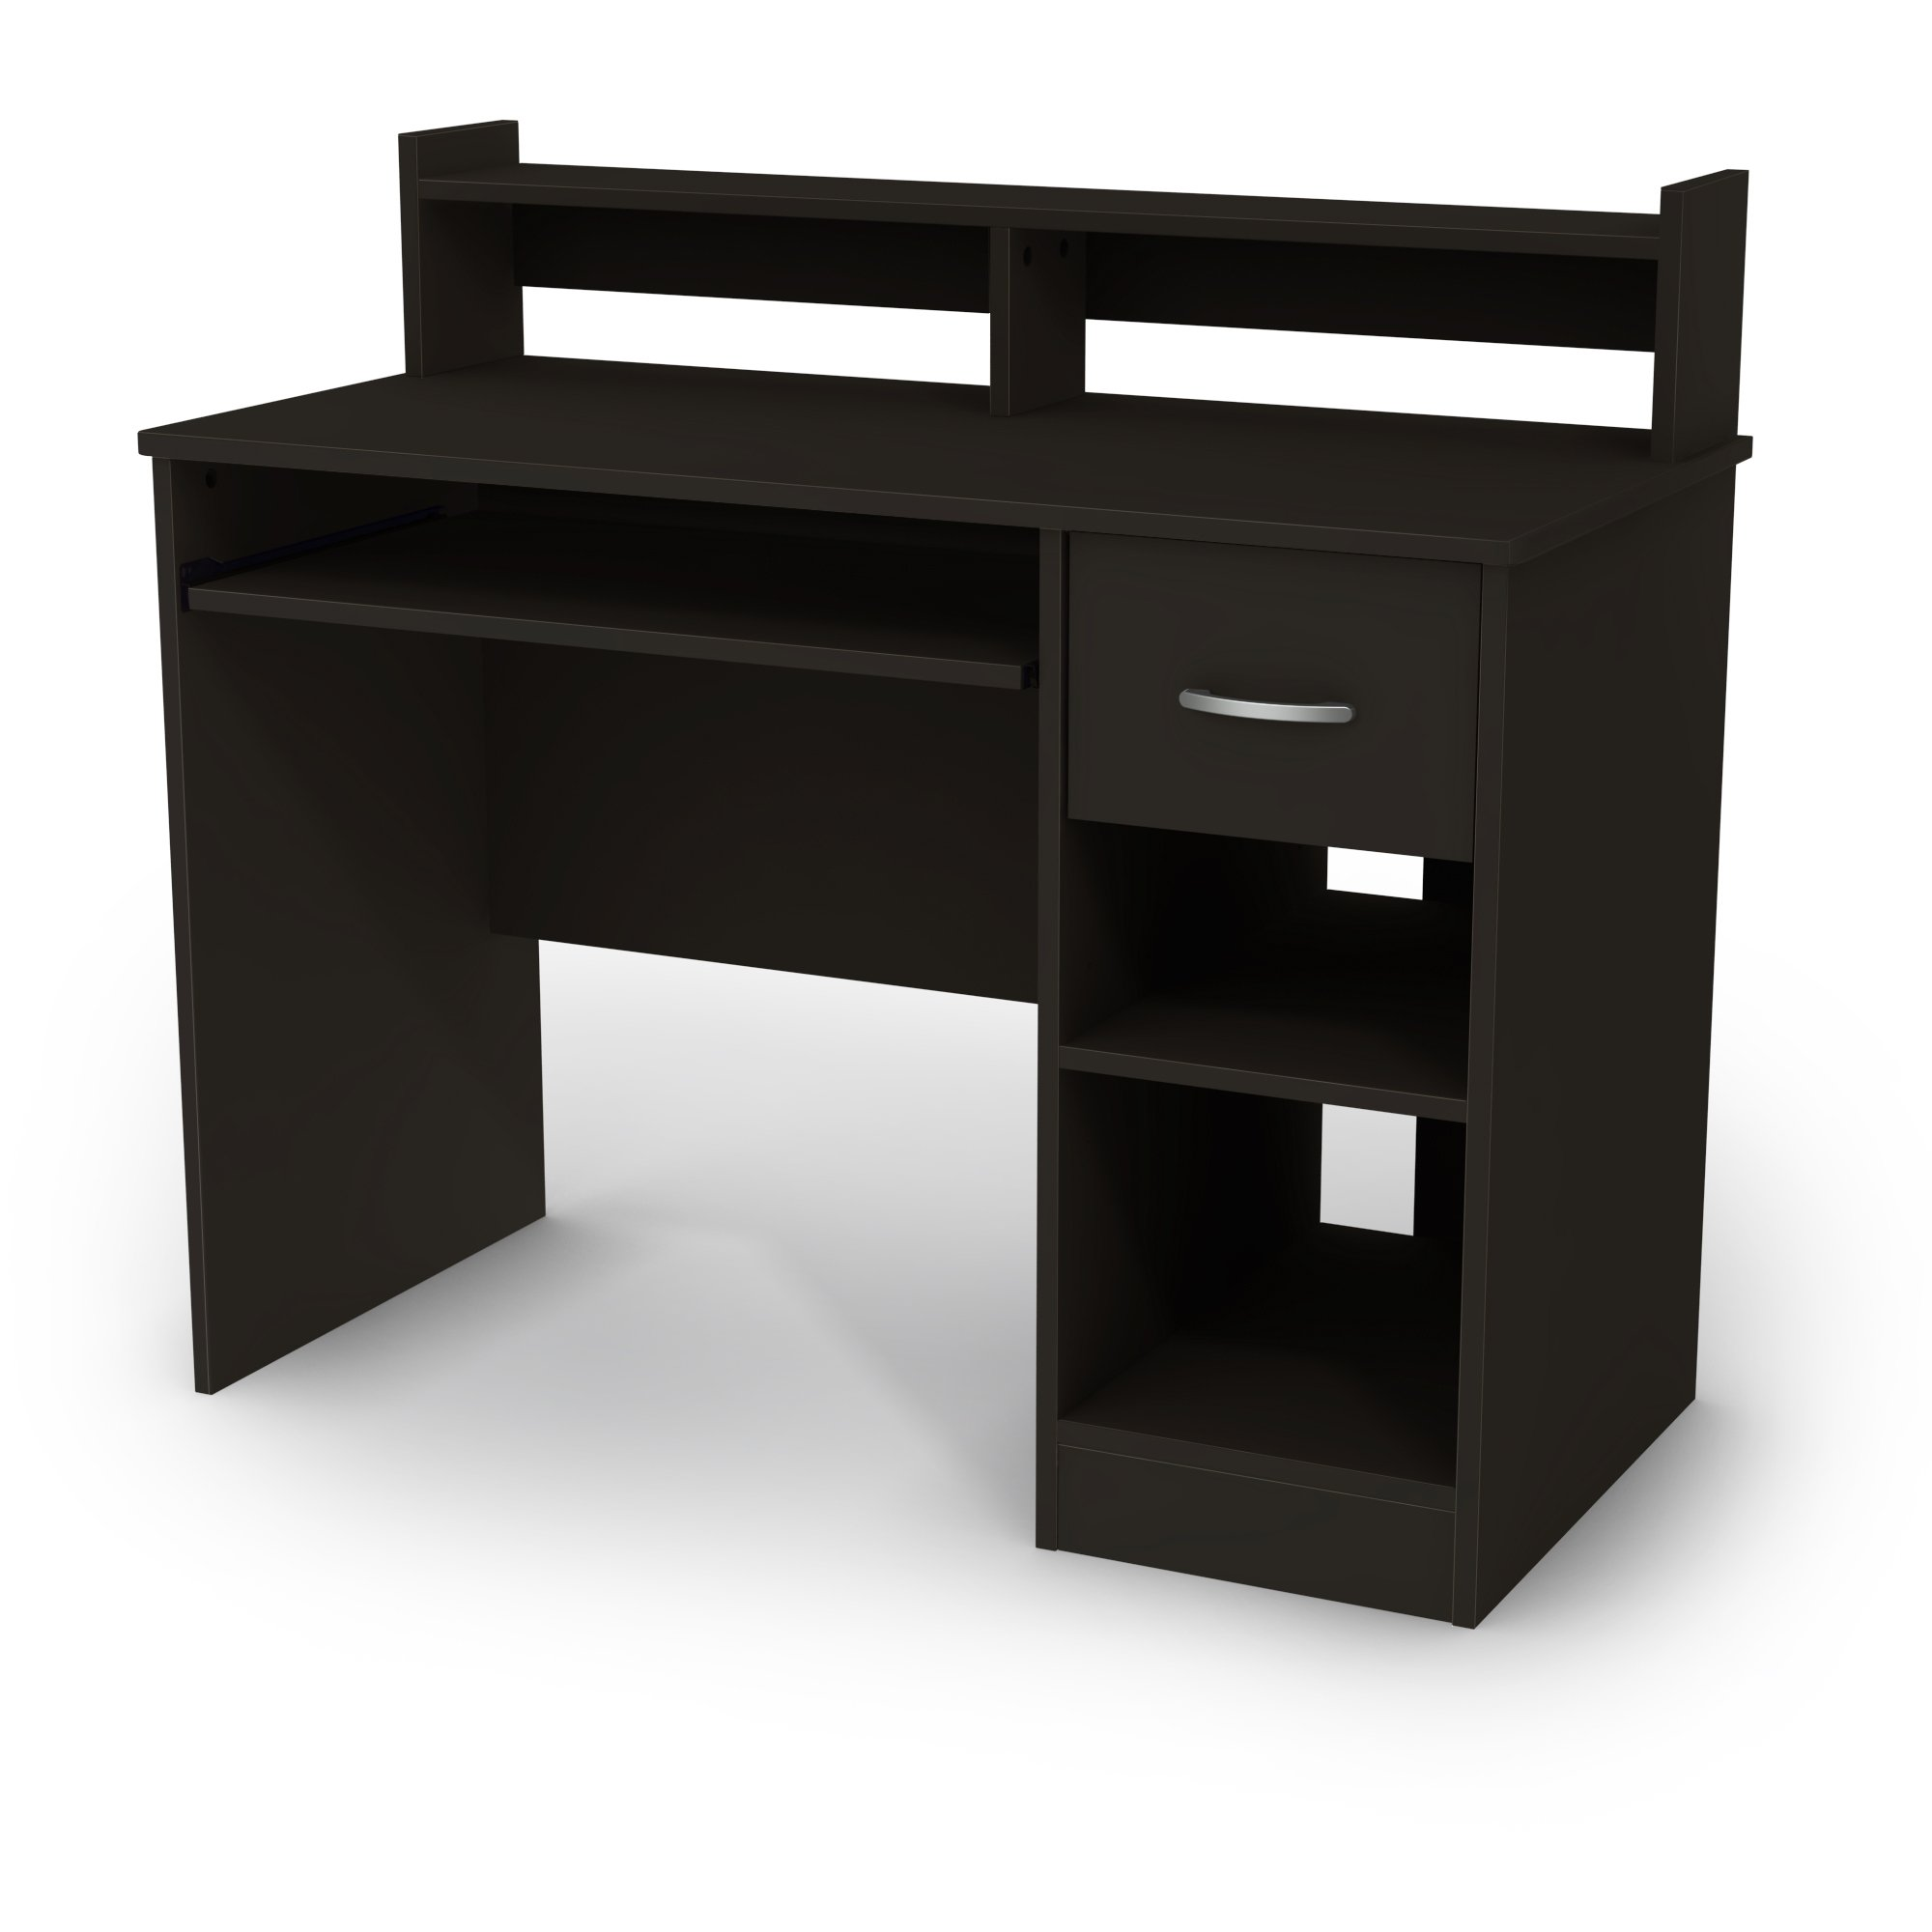 South Shore Axess Desk with Keyboard Tray, Black